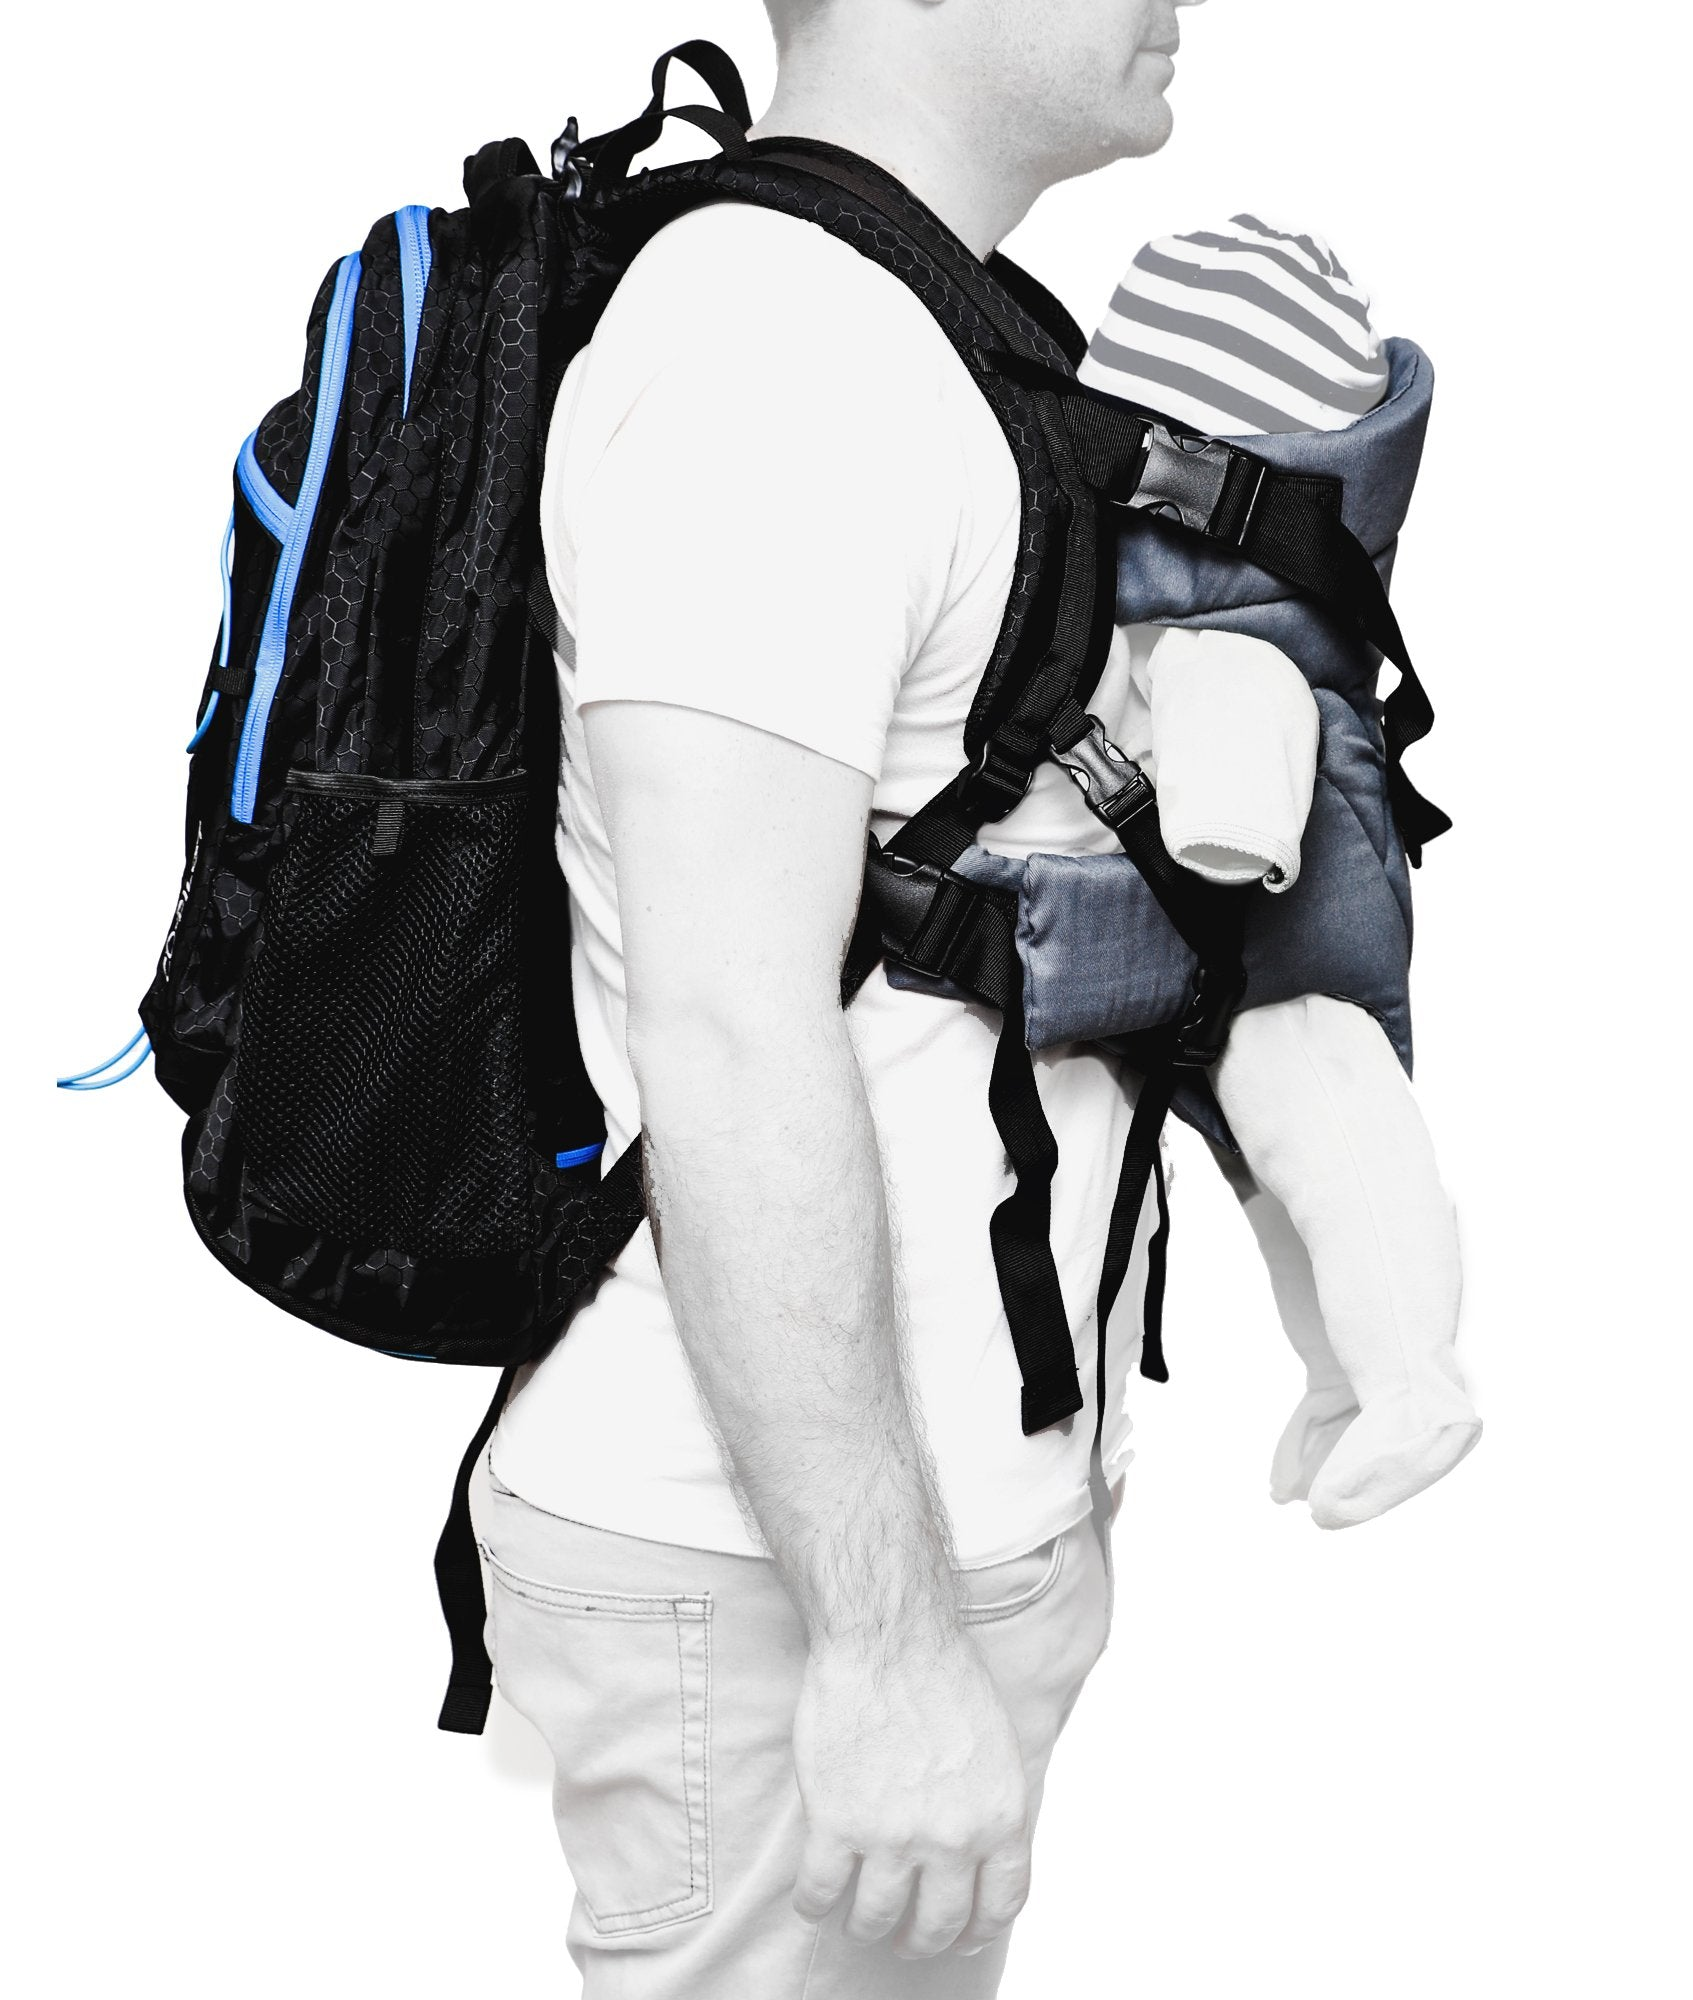 JP Outdoor Co. Co-Pilot Day Pack, Baby Carrier and Parenting Bag  - Black/Blue